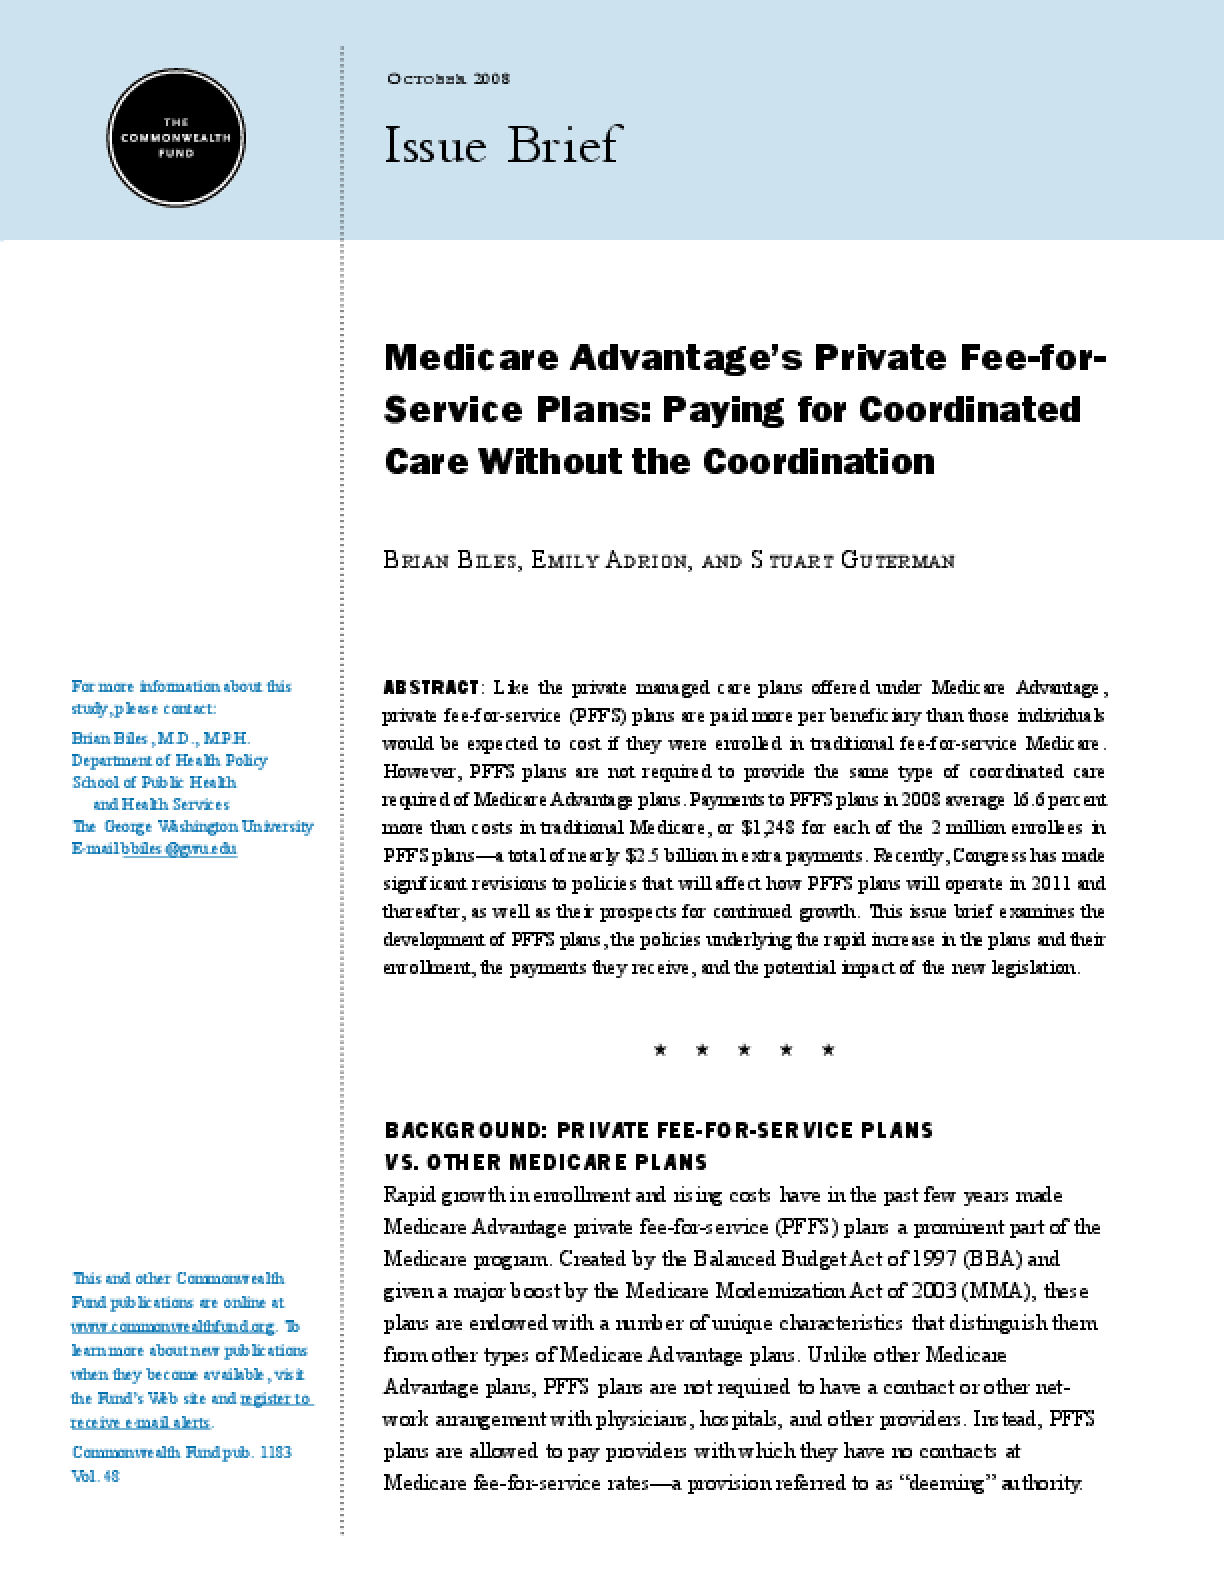 Medicare Advantage's Private Fee-for-Service Plans: Paying for Coordinated Care Without the Coordination